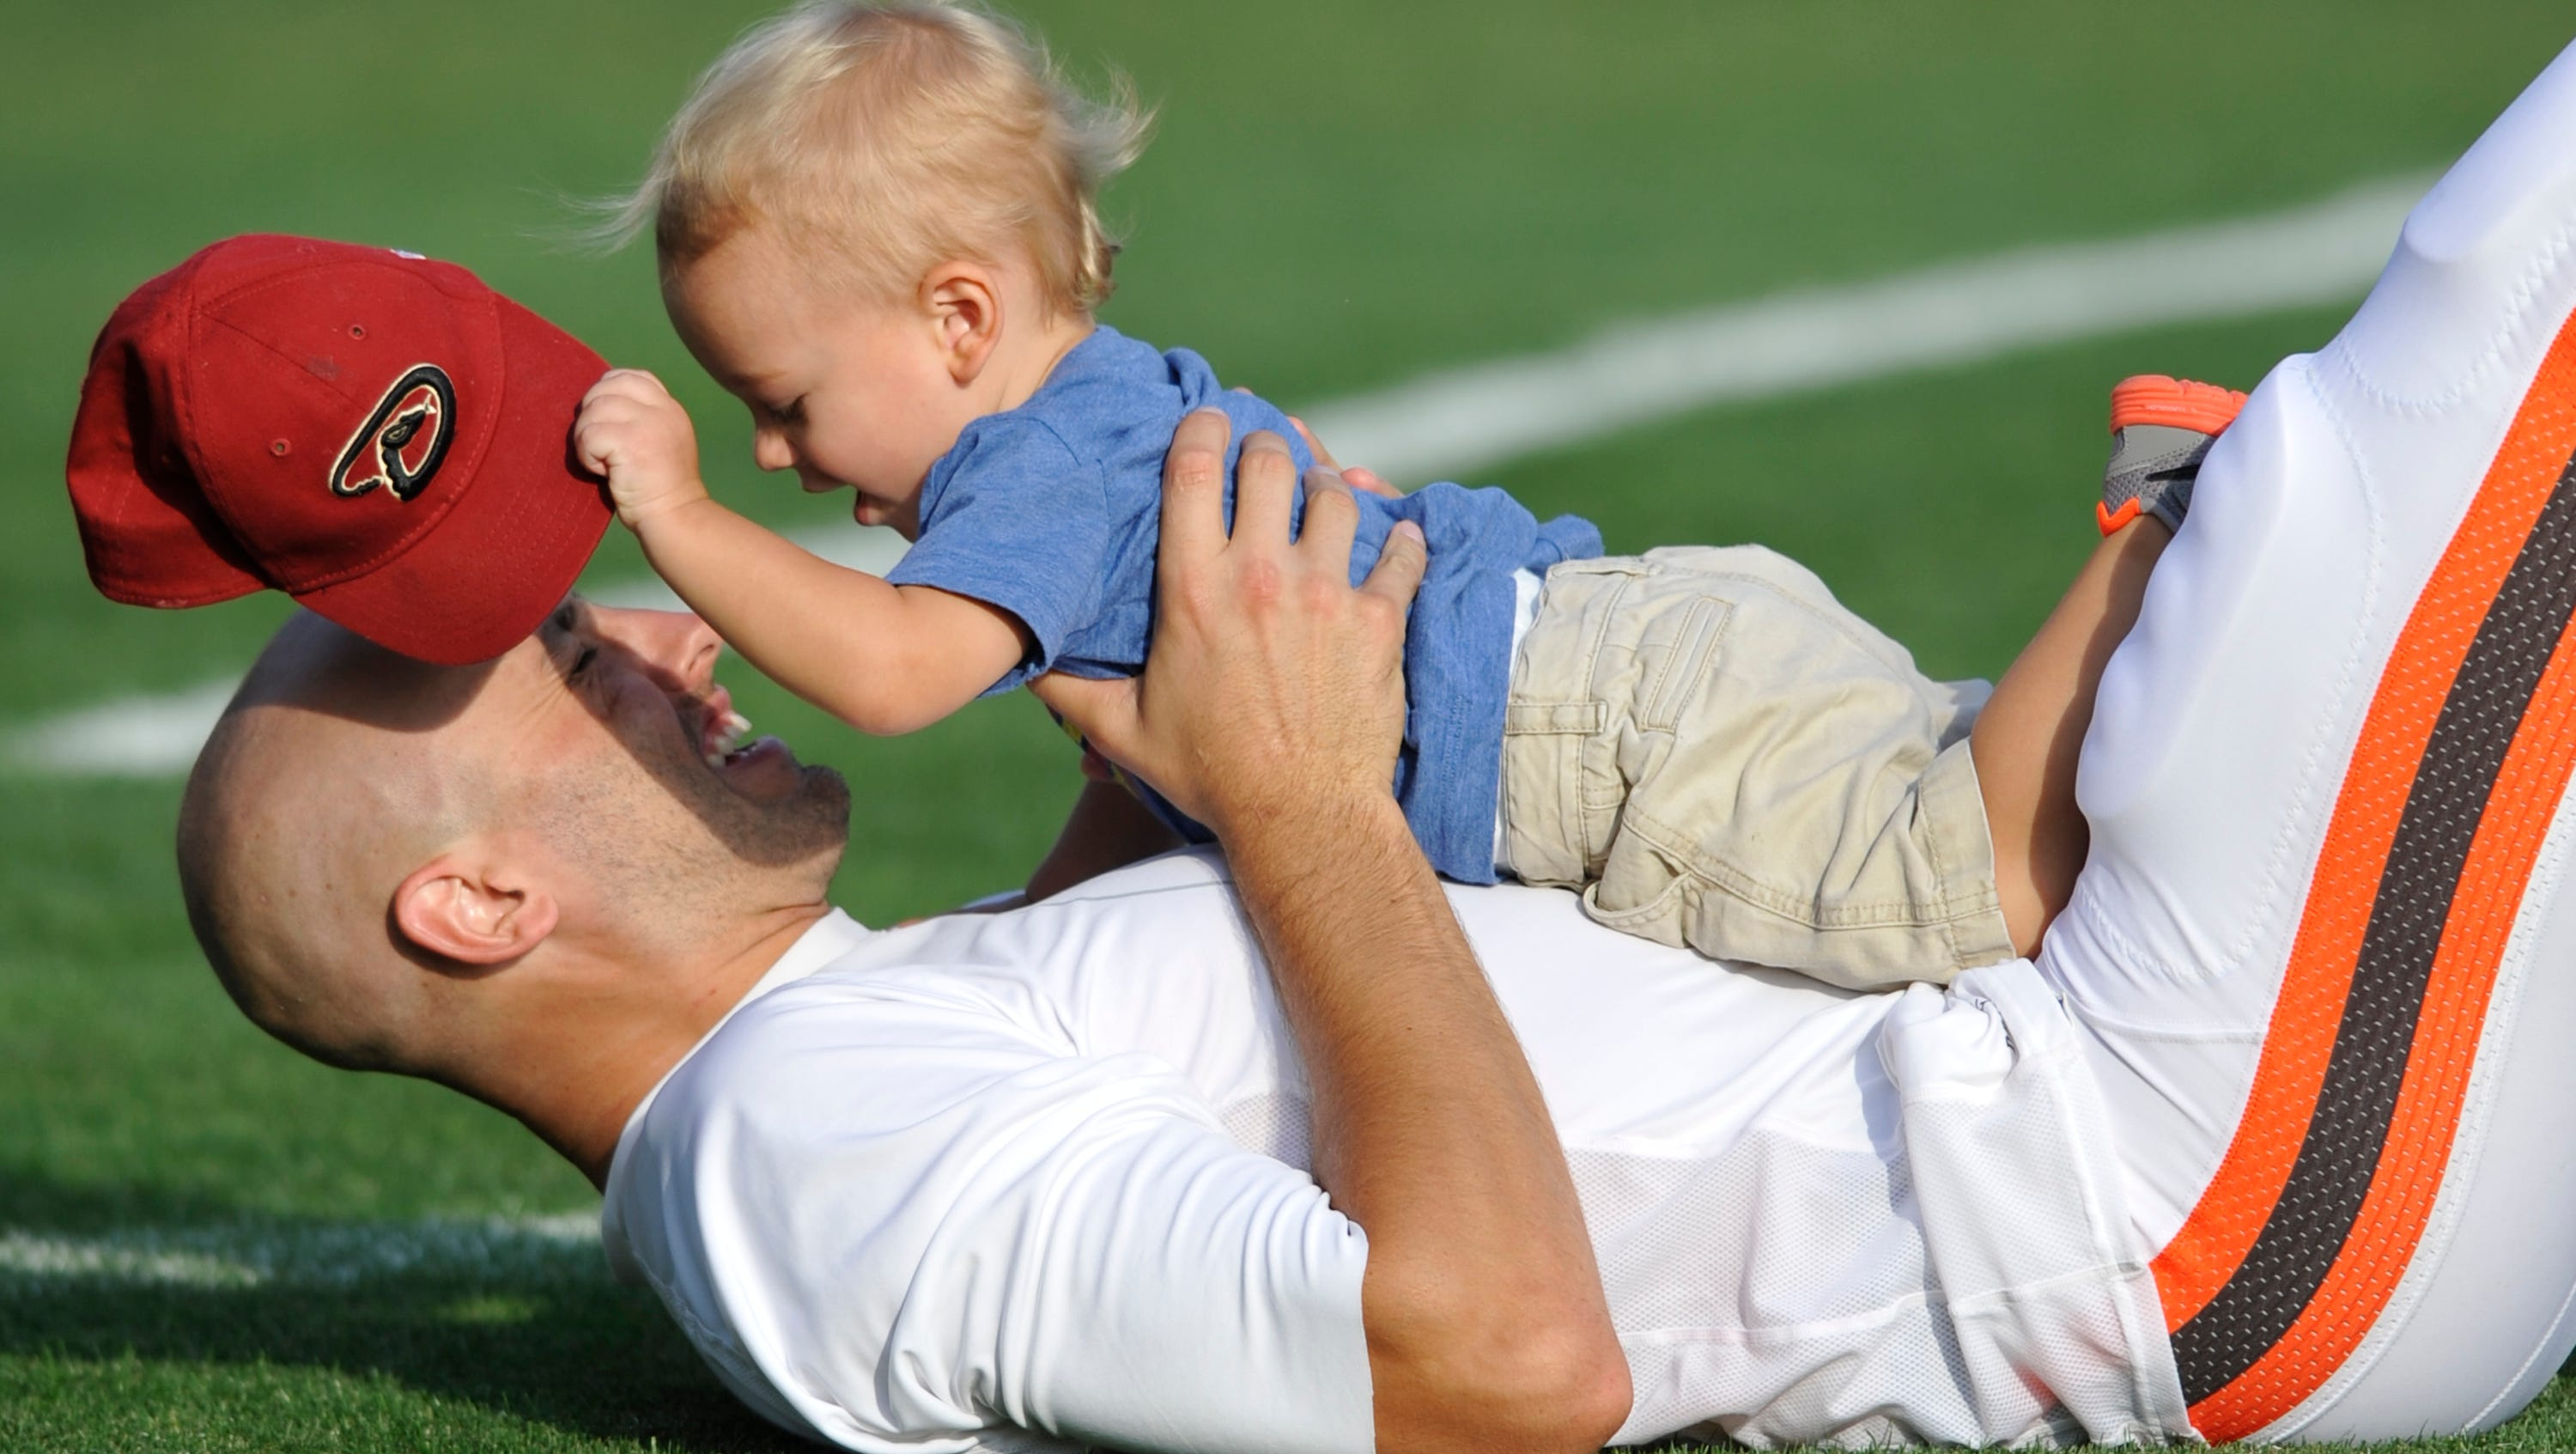 Cleveland Browns quarterback Brian Hoyer holds his son Garrett after practice during training camp at the NFL football team's facility in Berea, Ohio.